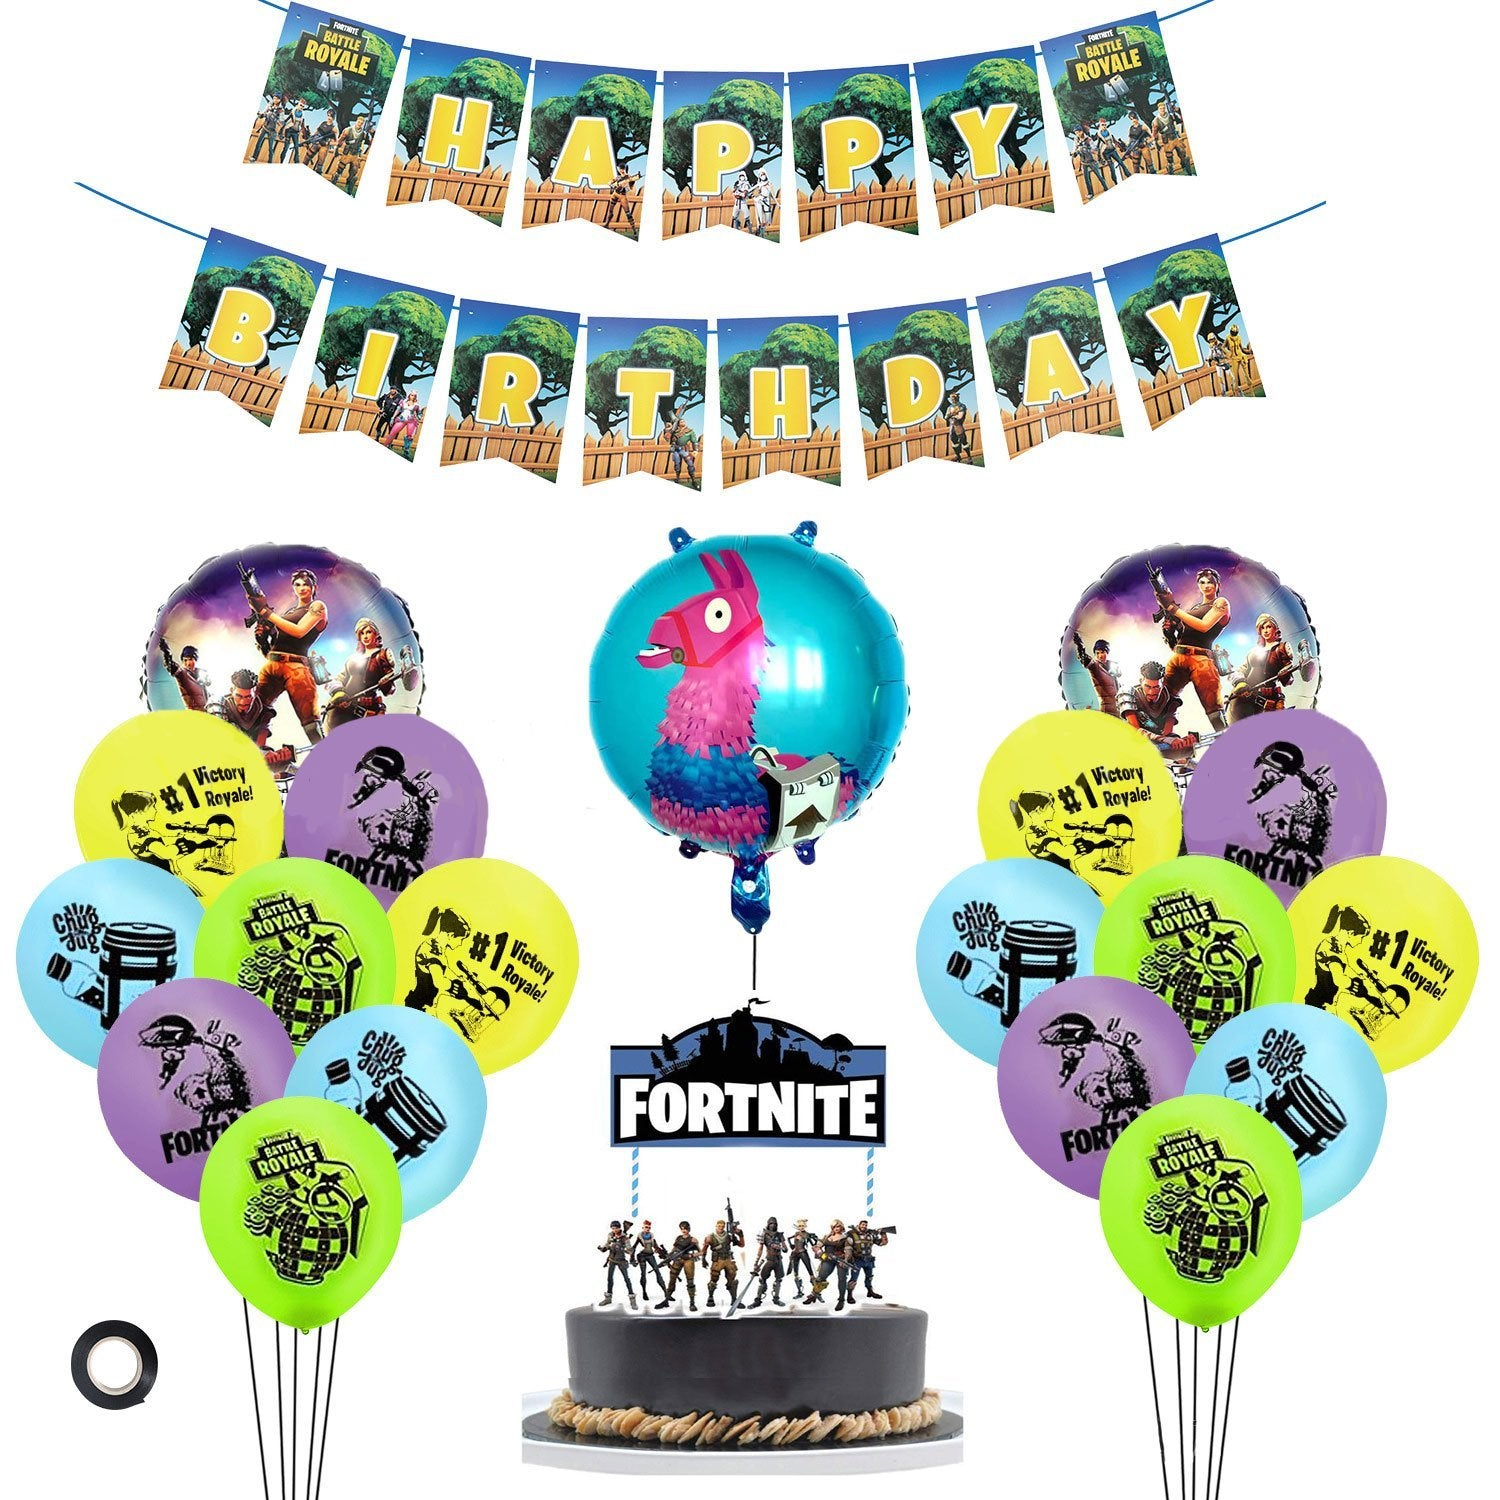 Fortnite Balloons Banner Cake Topper Kit Party Supplies